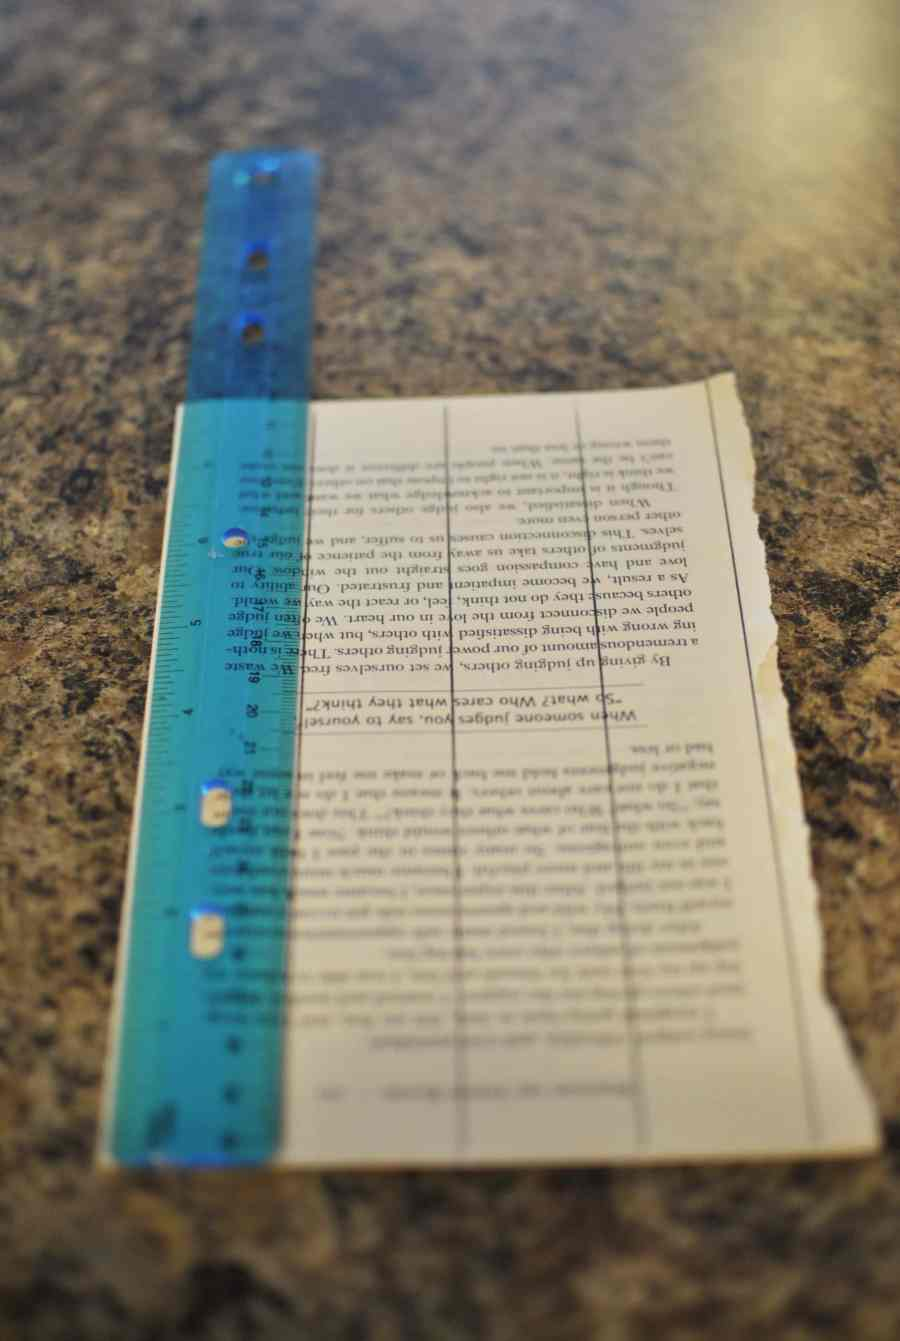 Measuring a page from a book